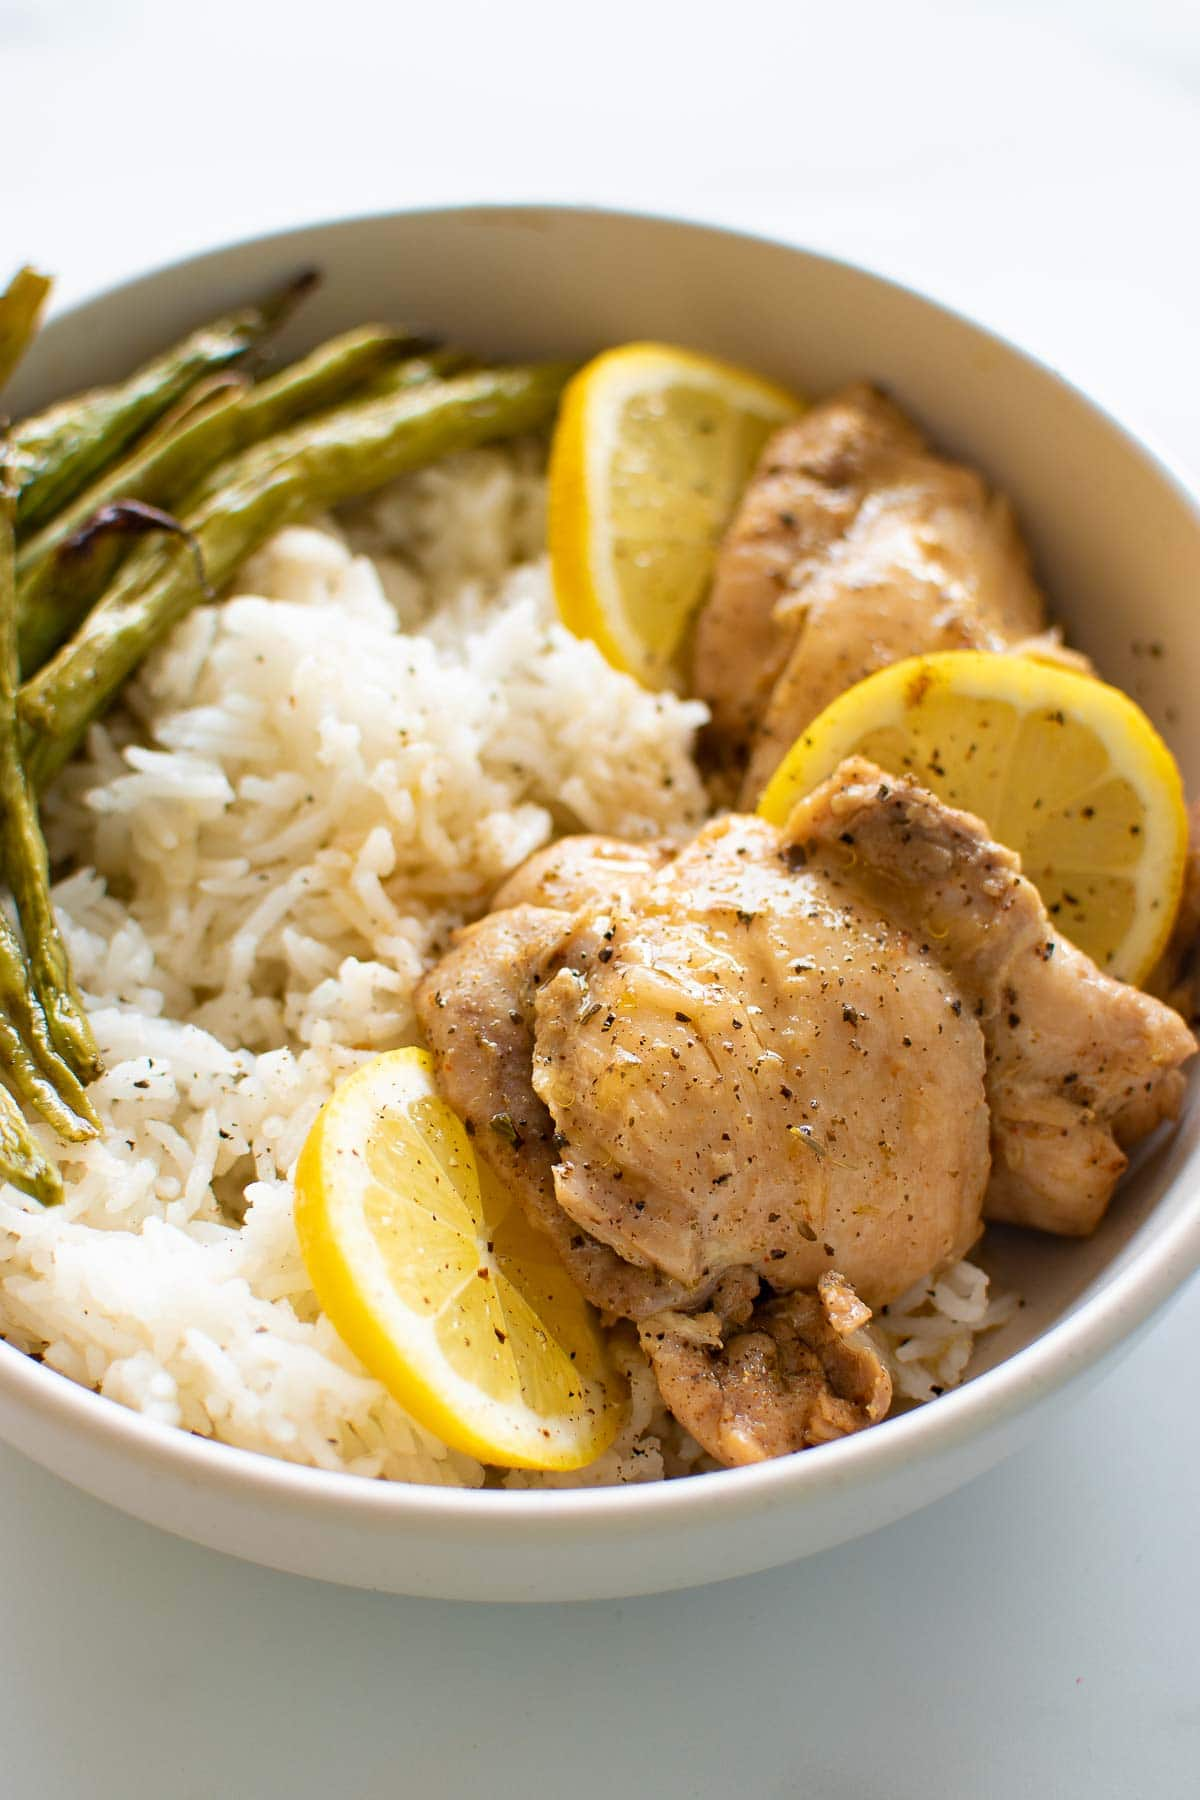 Lemon garlic chicken thighs in a bowl with rice and green beans.